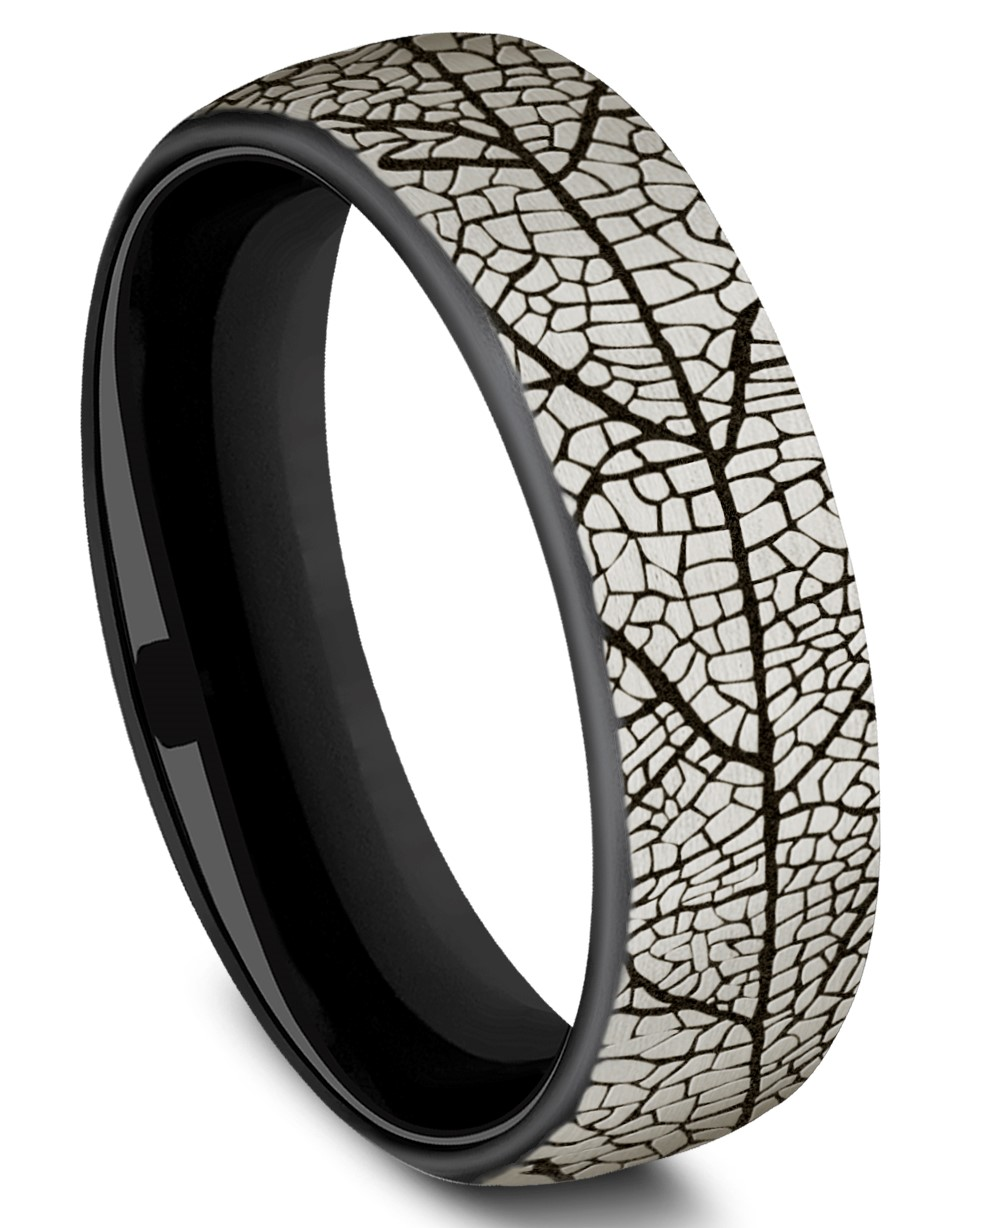 Benchmark 6.5mm Black Titanium Leaf Design Men's Ring